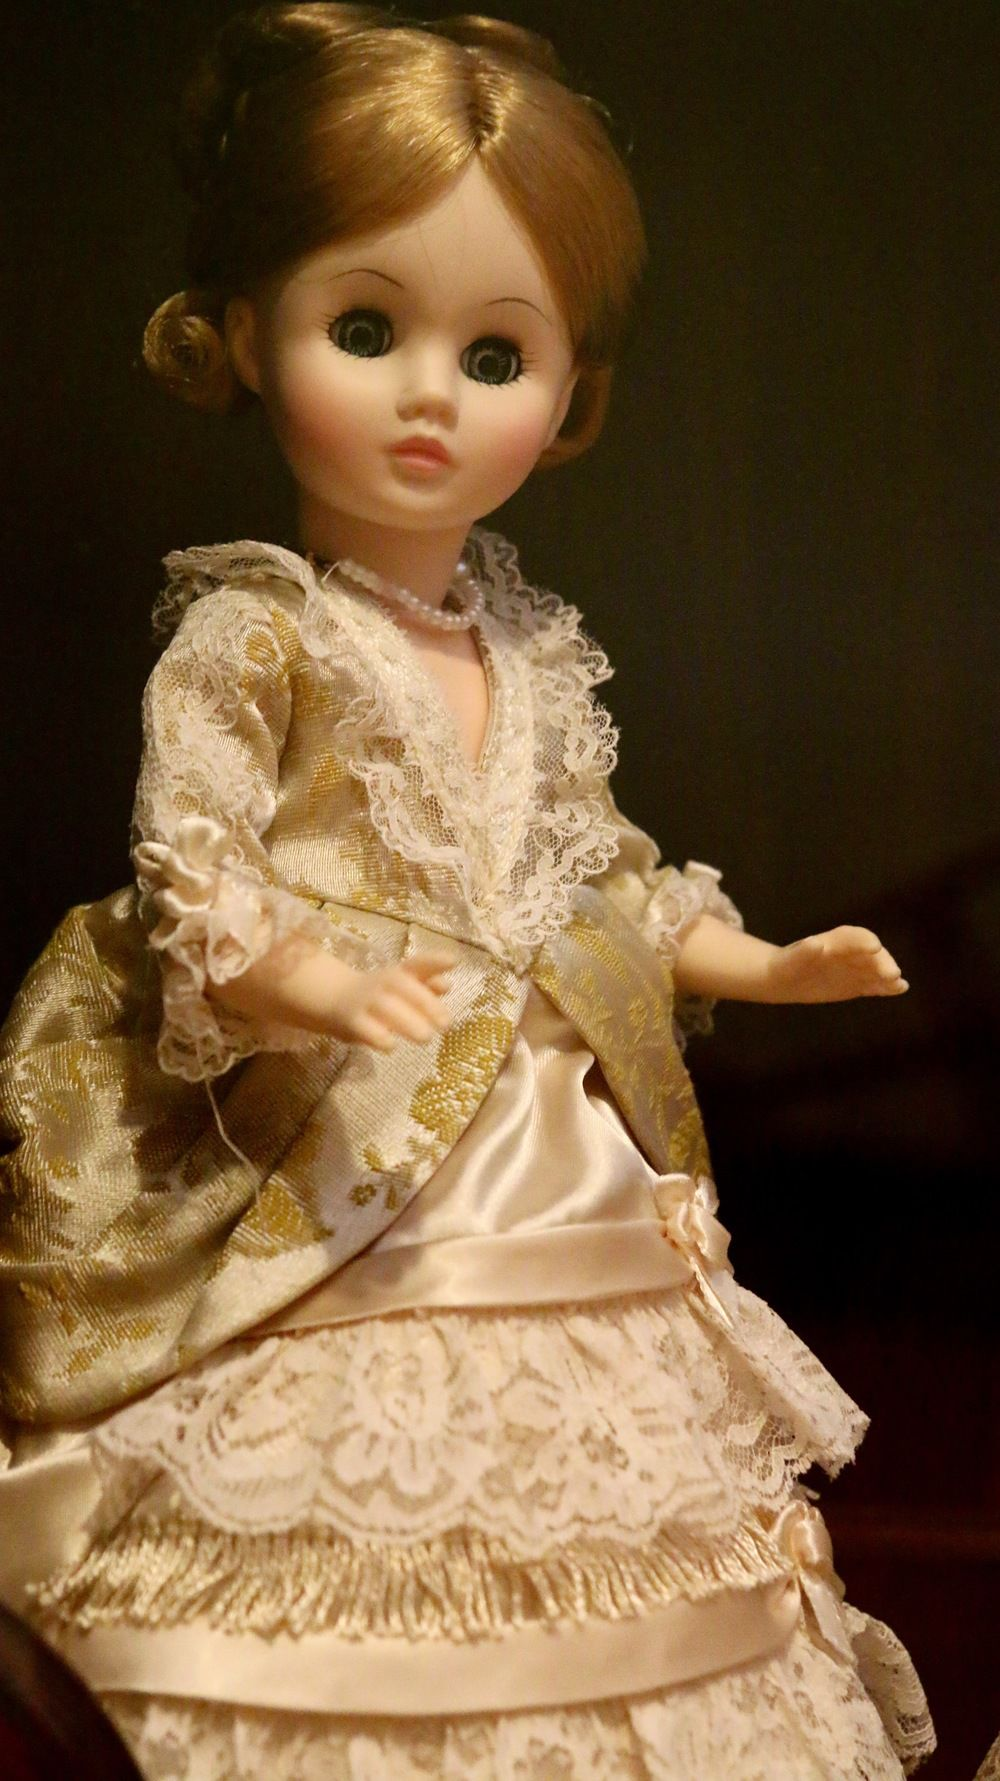 Doll exhibit one of several new projects at Heritage Center | News ...